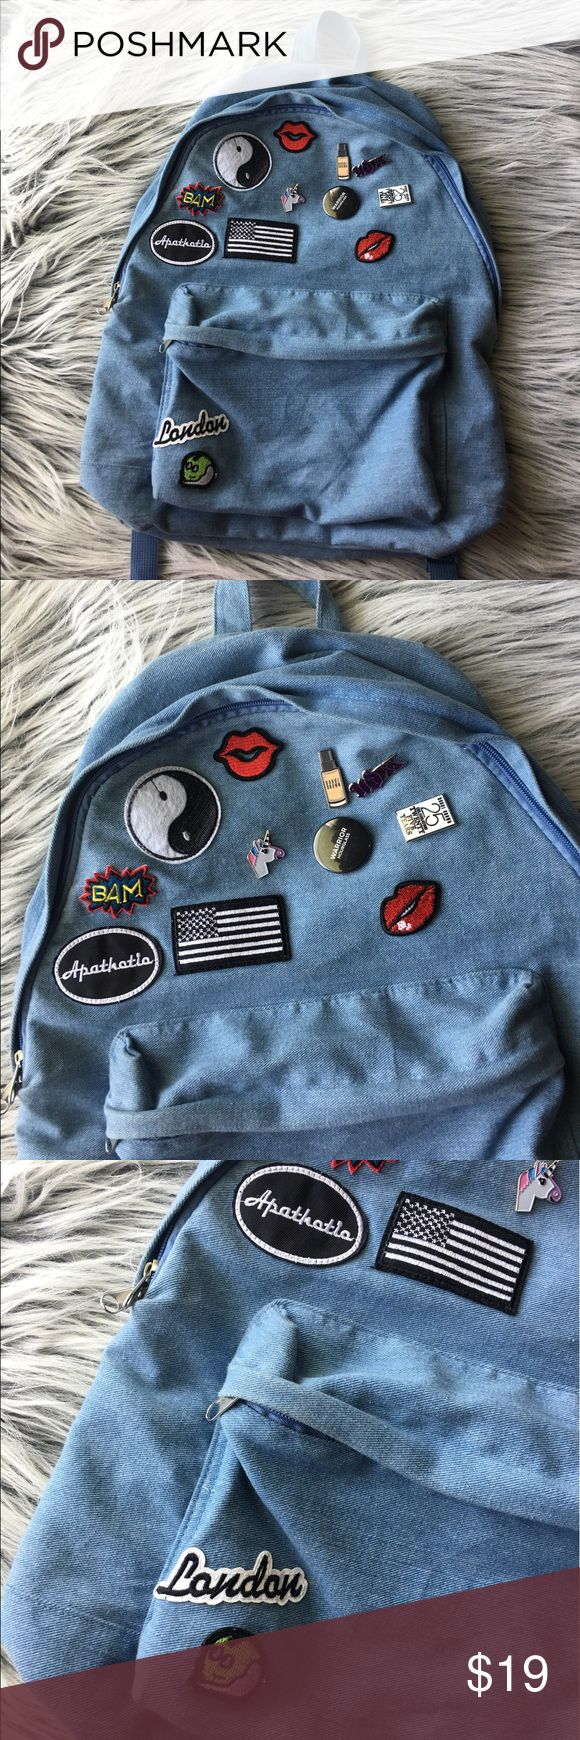 Unisex  jean backpack  with patches  EUCWill ship asapNo exchange or returnsAll sales are finalAll offers are welcomed Topman Bags Backpacks